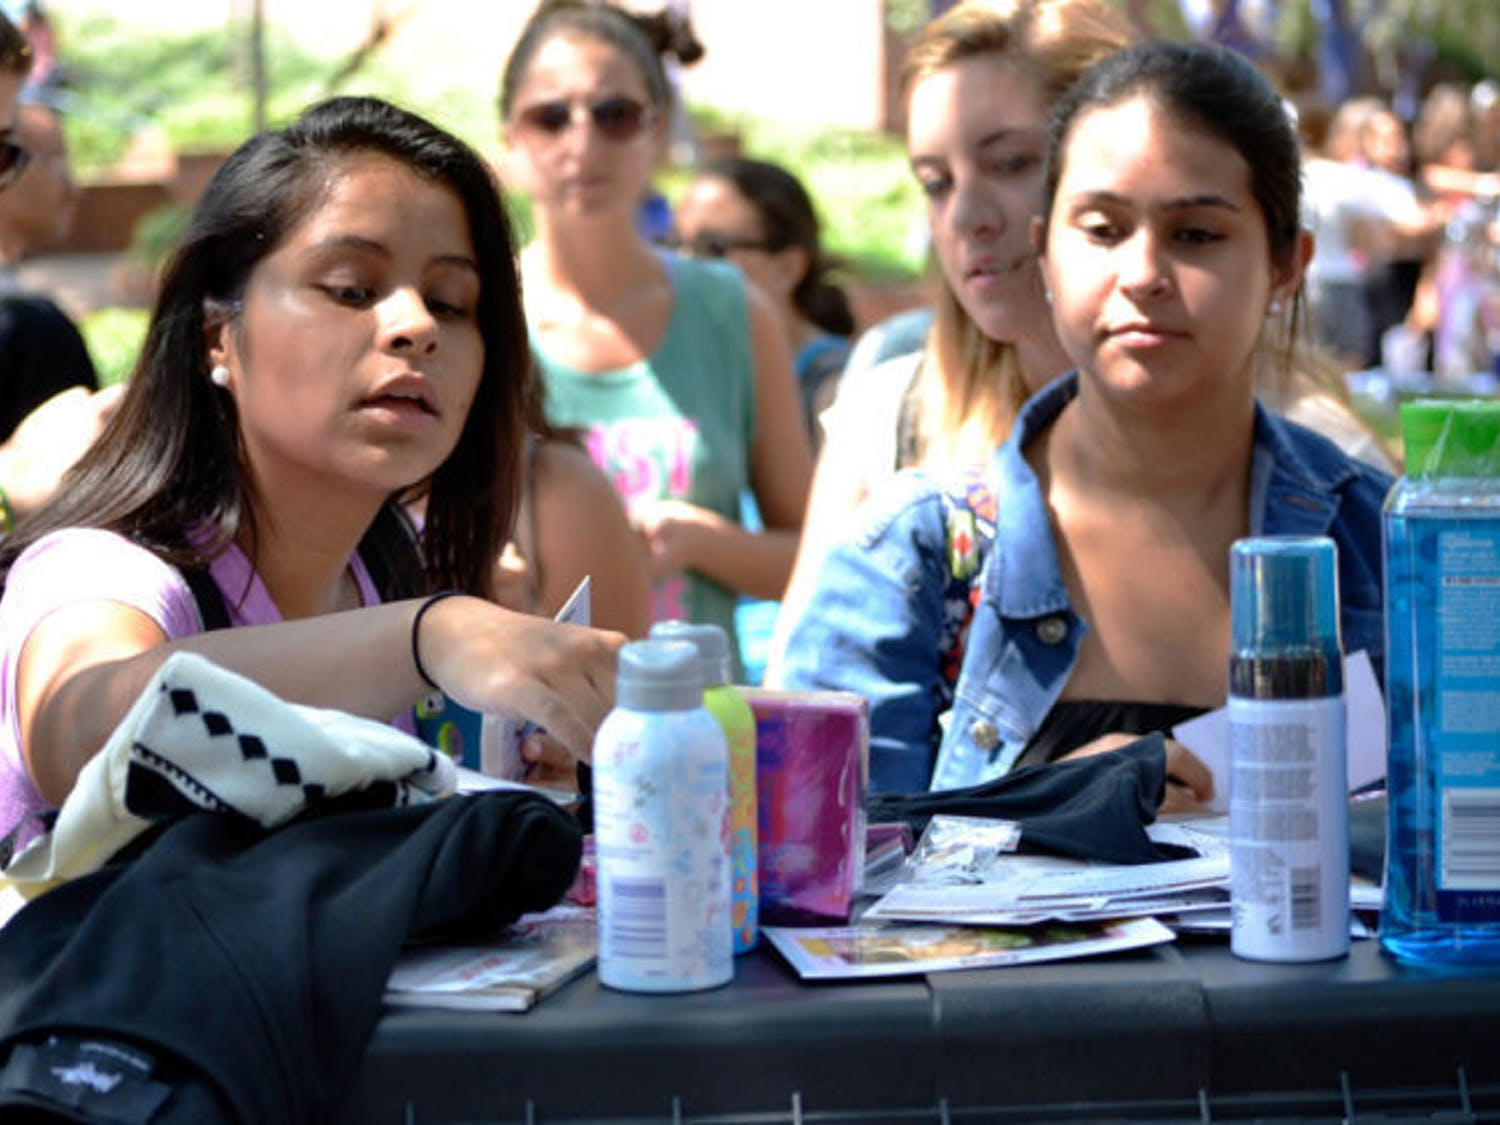 Michelle Tulande, left, reaches for items from a Teen Vogue giveaway event hosted by Her Campus Thursday on Turlington Plaza. The organization offered goodies to those who participated in social media challenges.